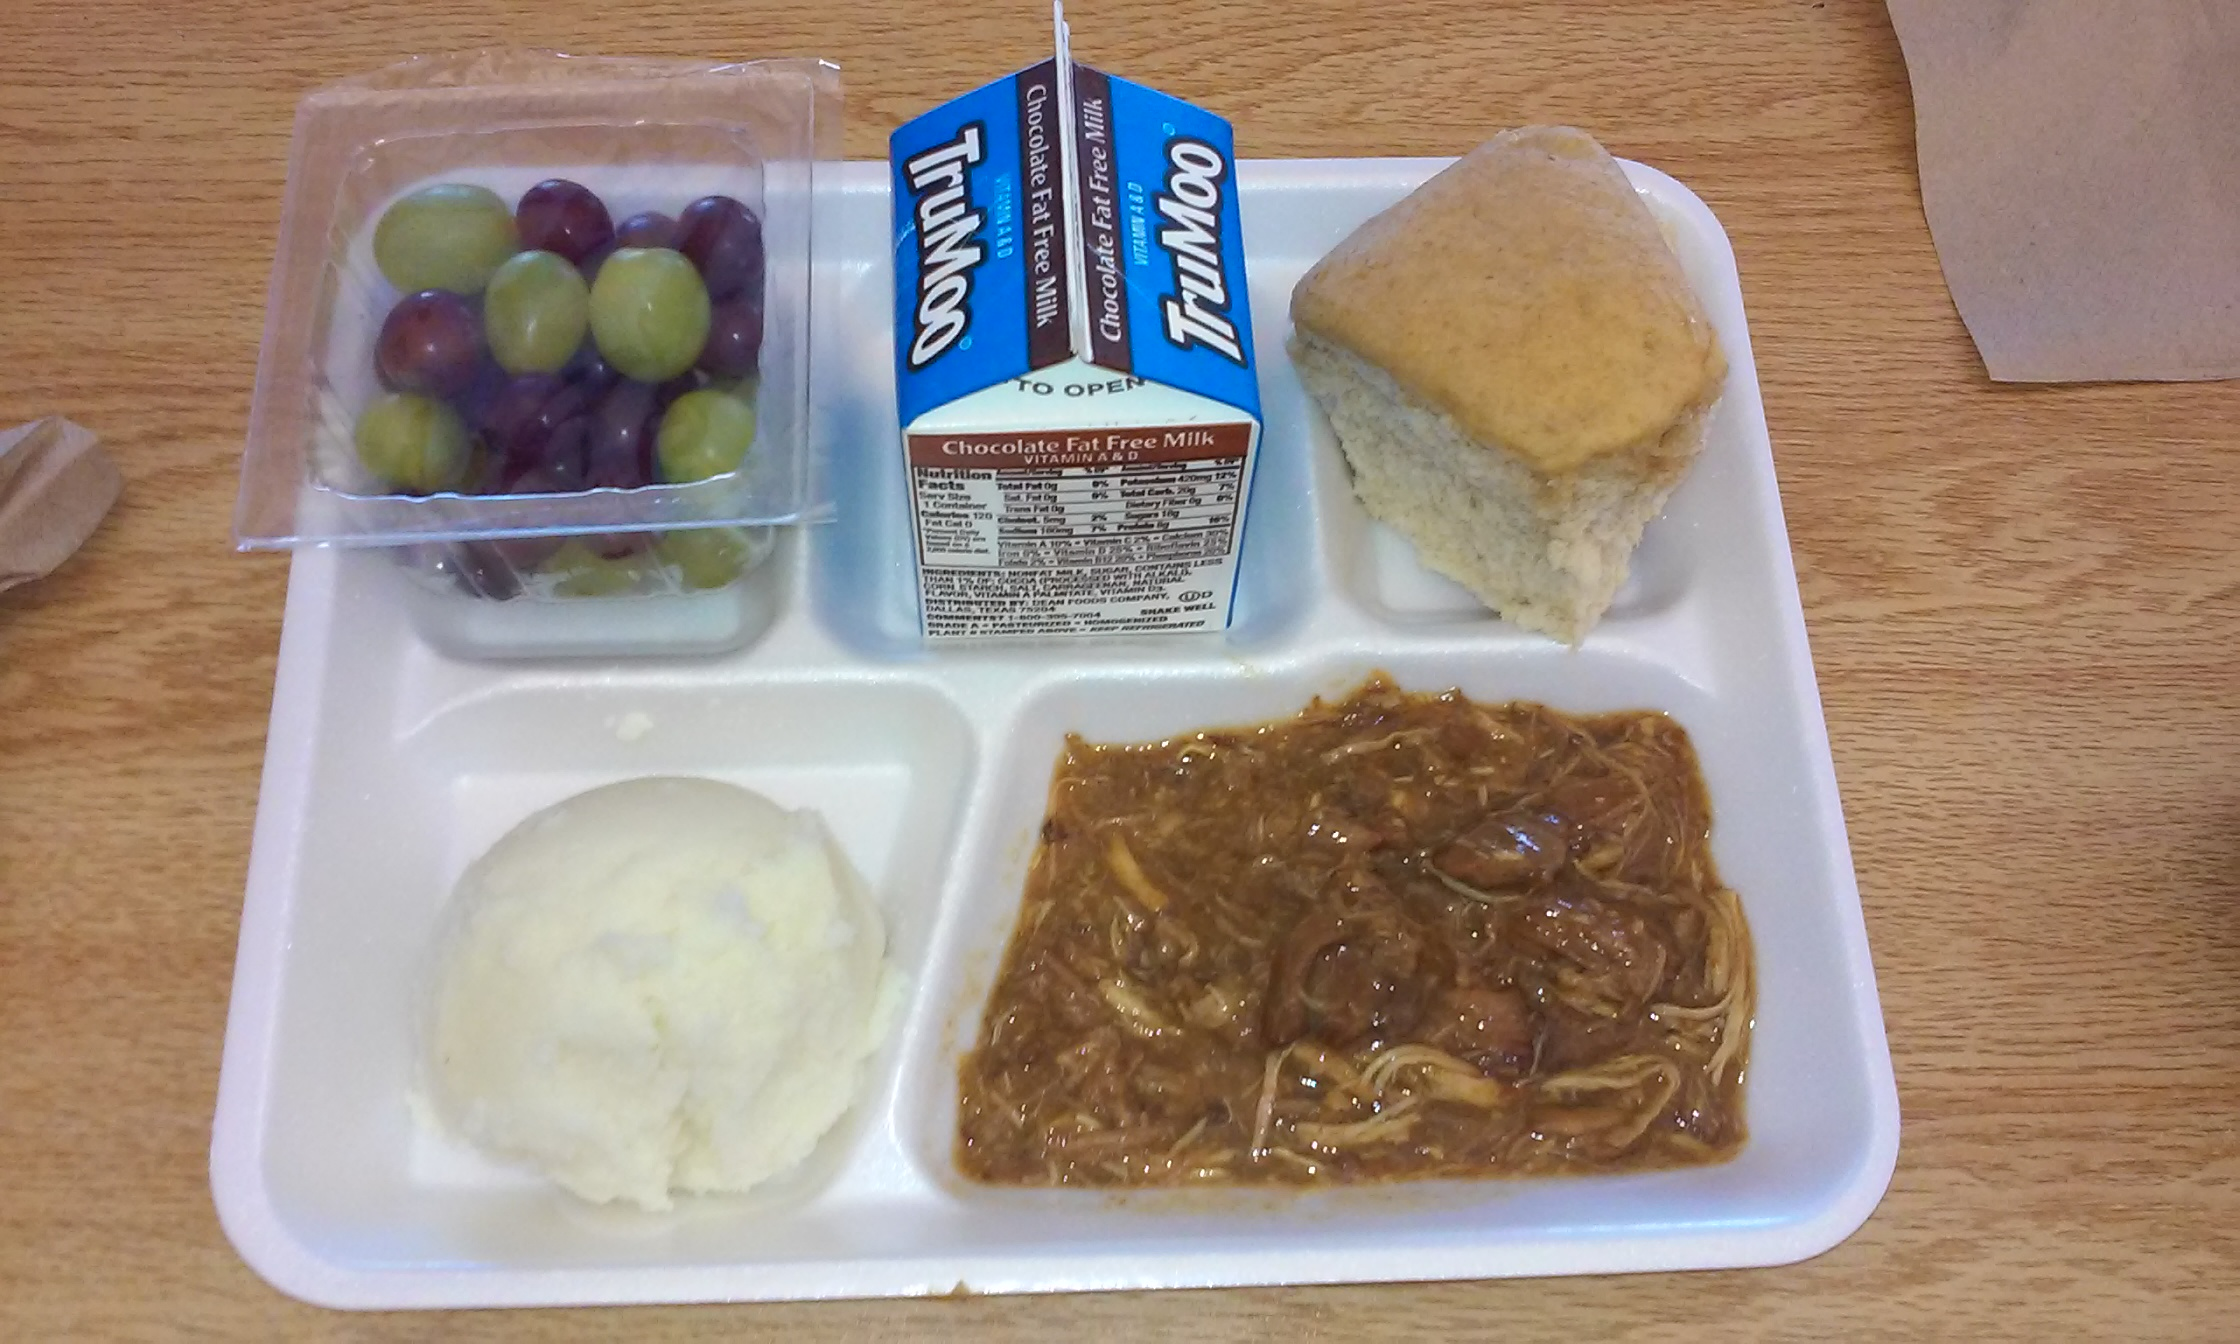 Student: Would you eat this for lunch?